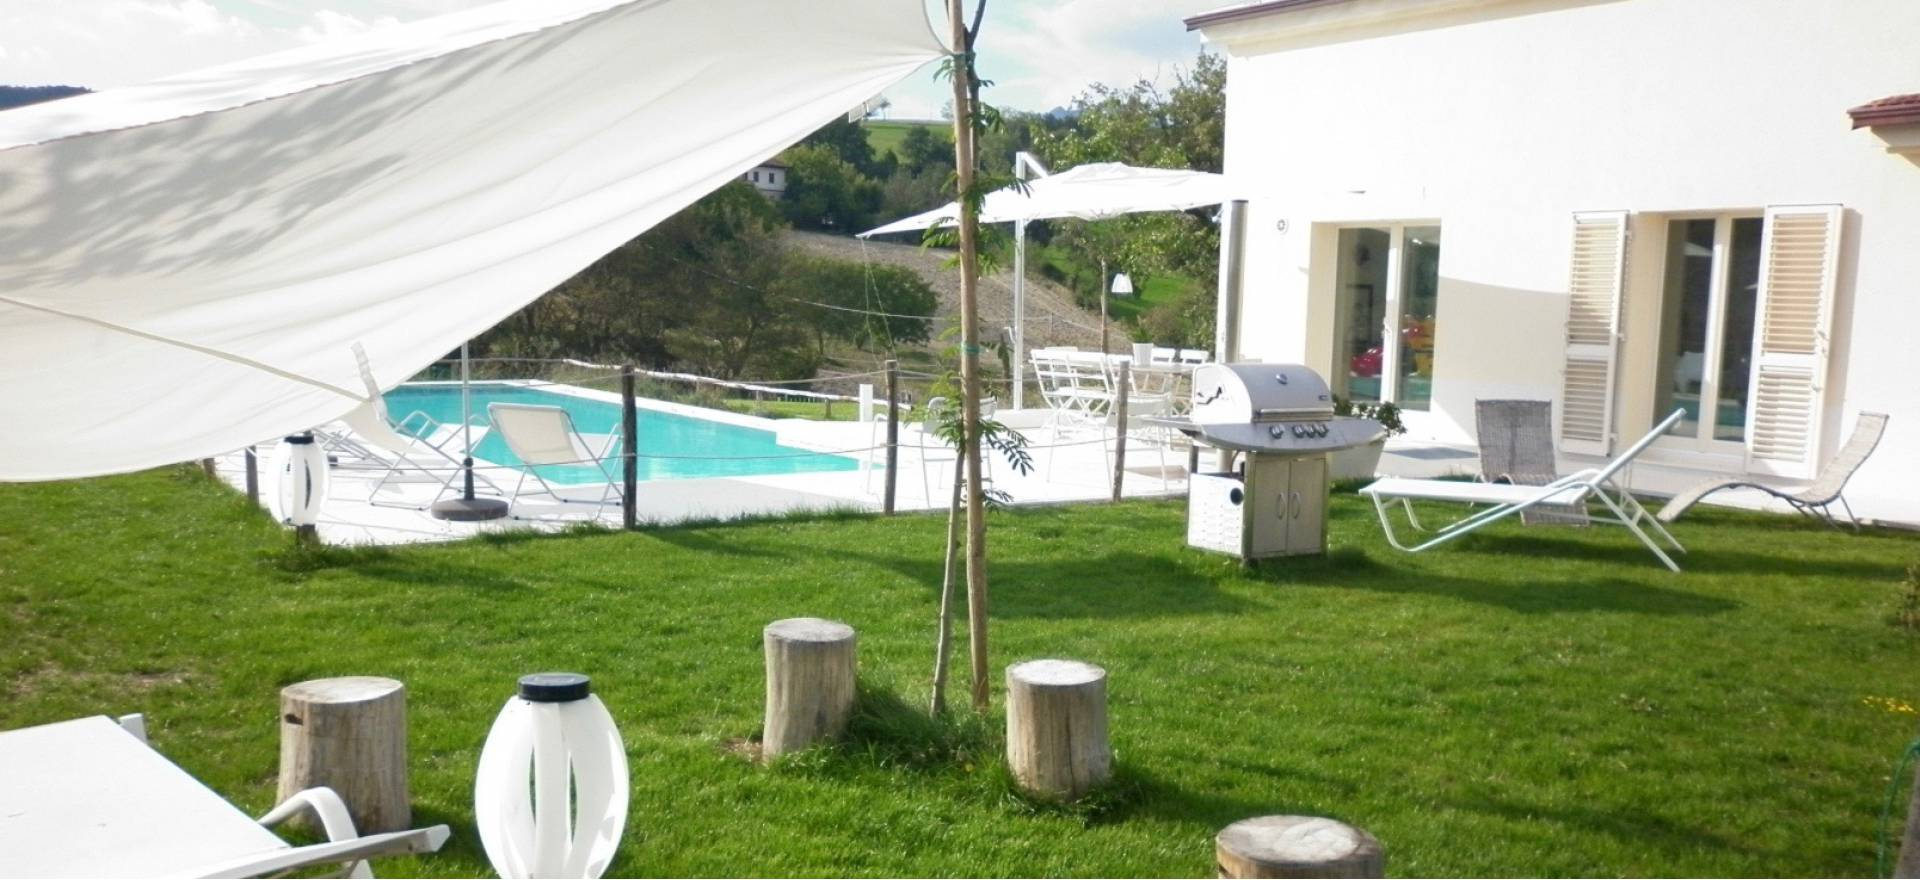 Agriturismo Marche Luxury private villa & pool between Umbria and Marche